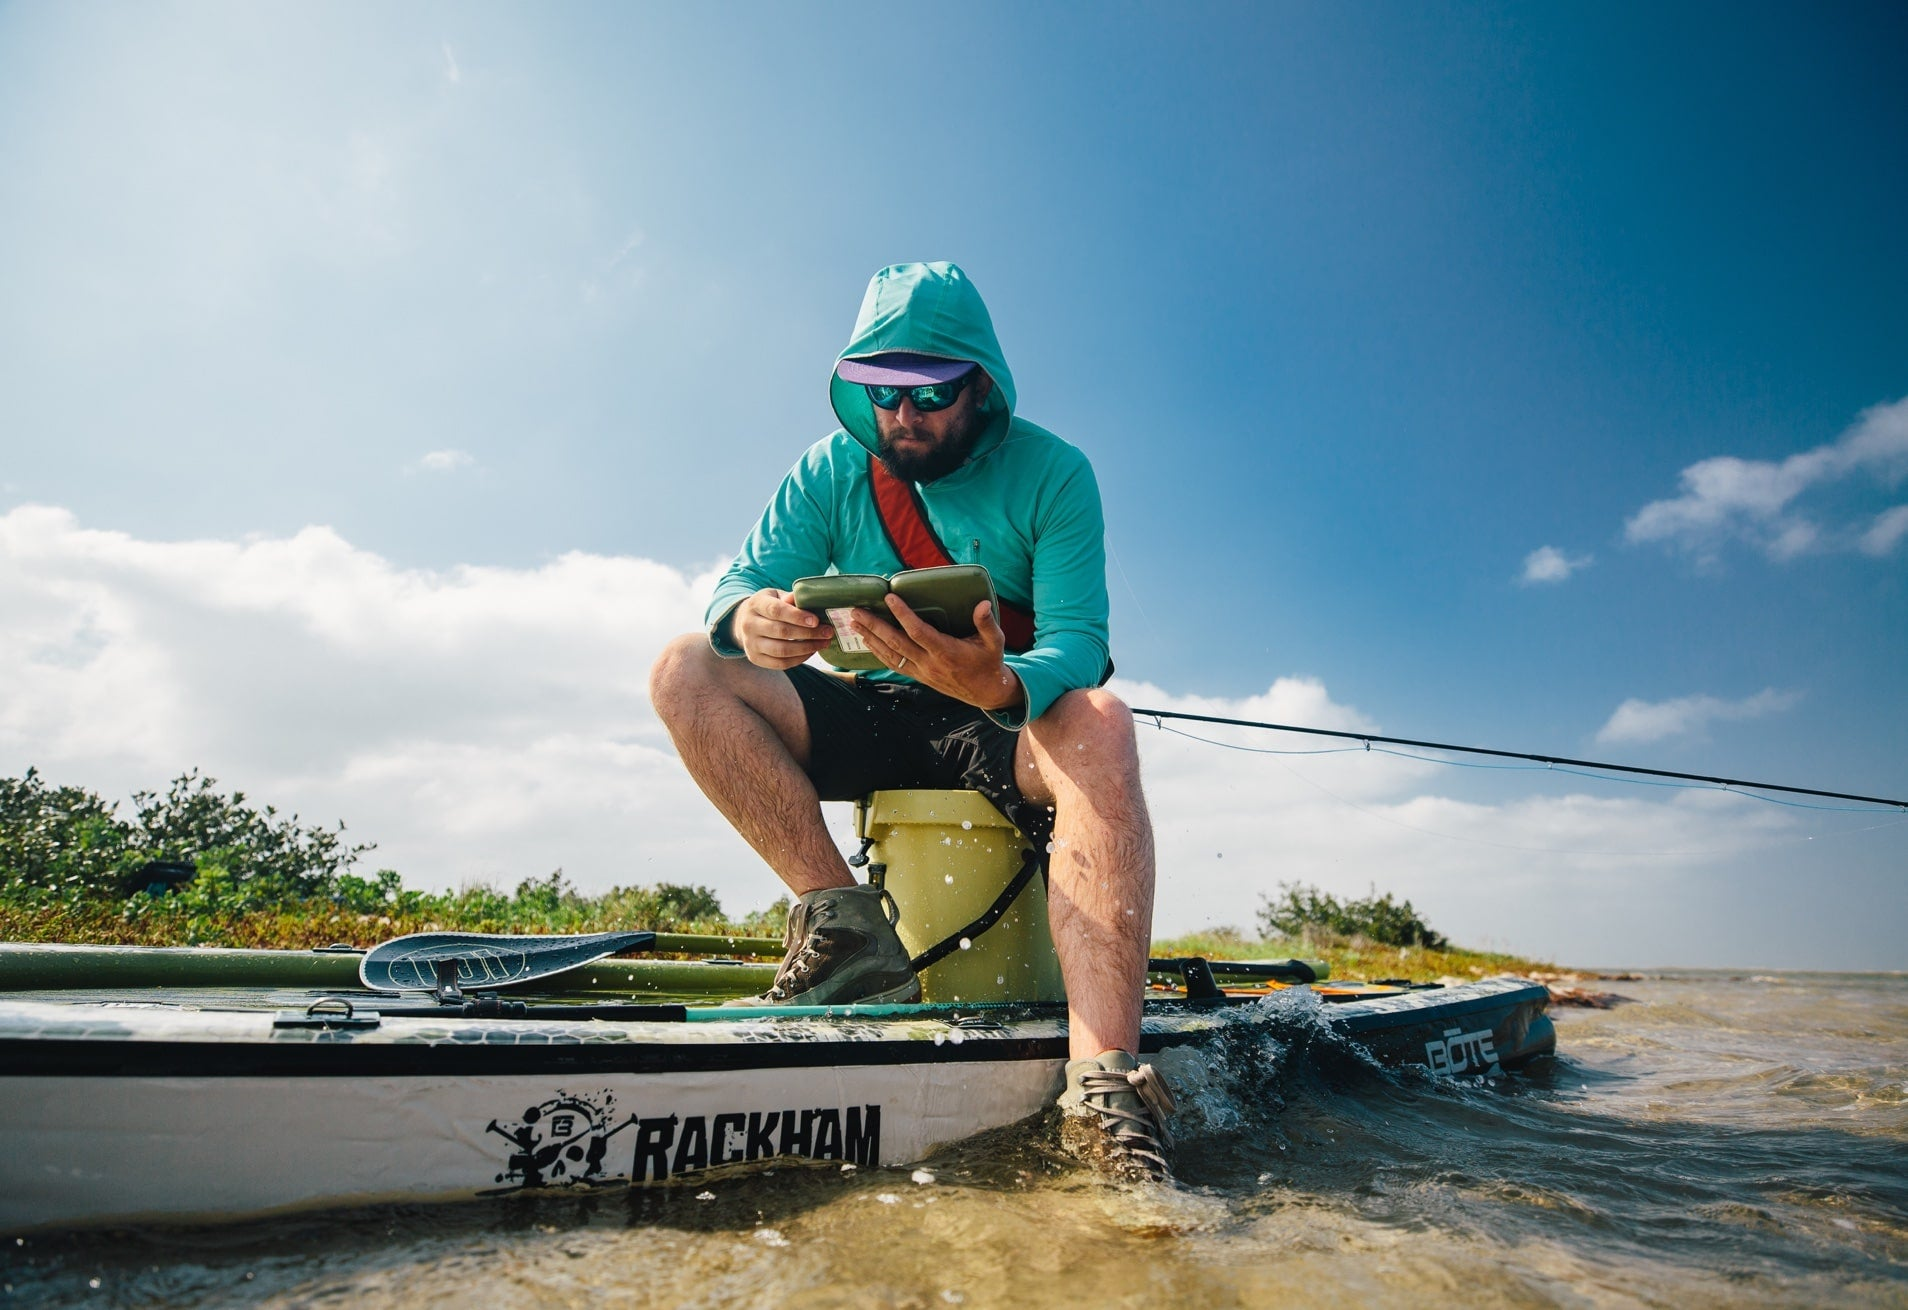 man choosing fly for fishing on BOTE inflatable rackham paddle board